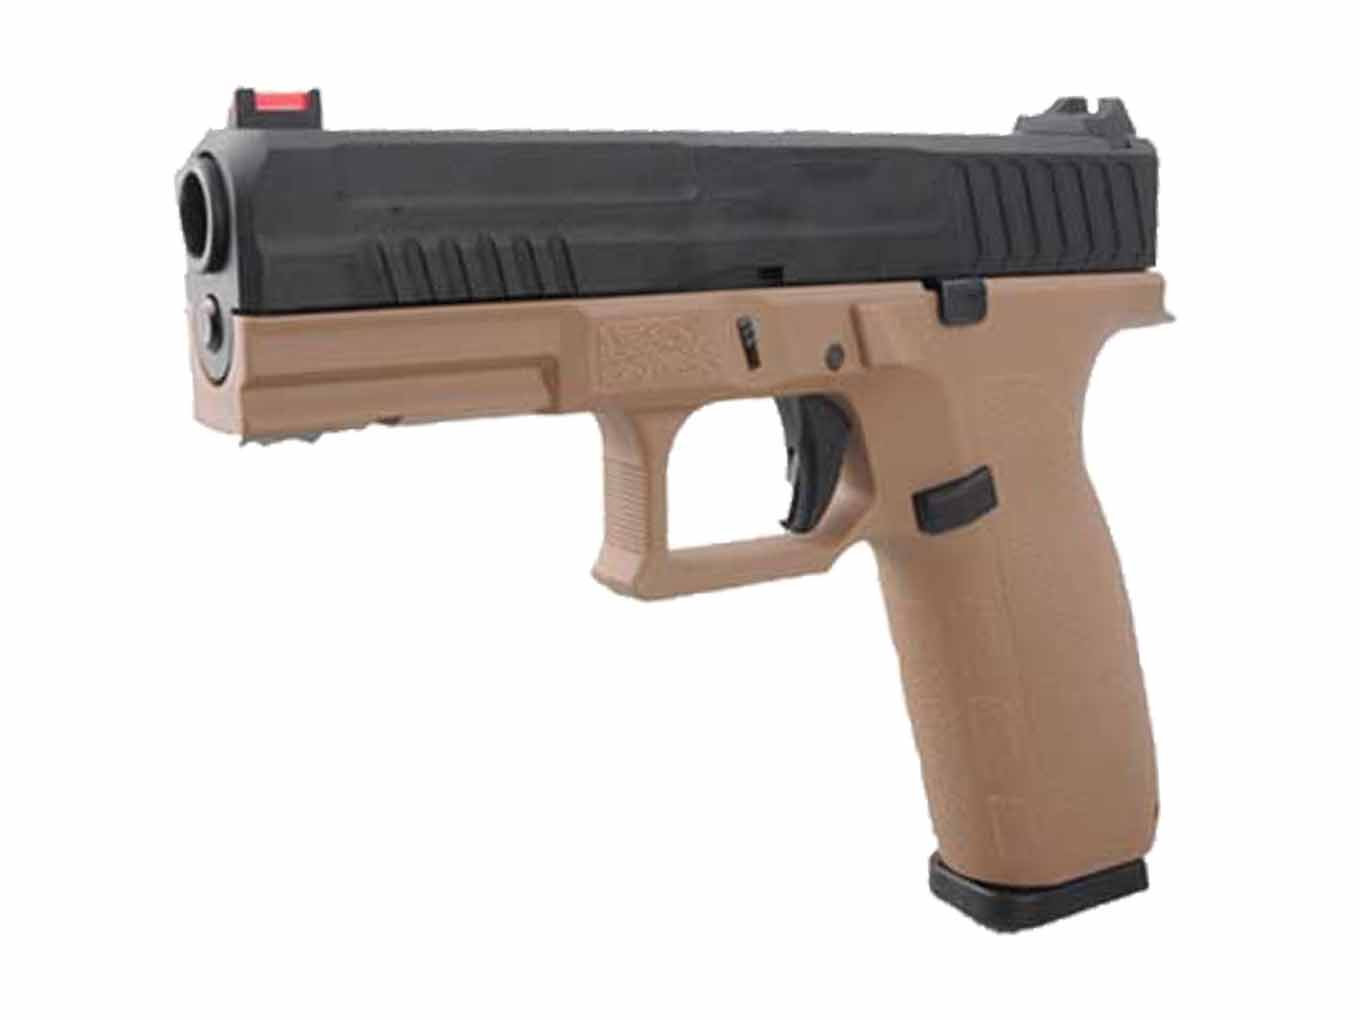 KJW KP-13 Full Size Polymer Frame Gas Blowback Pistol Tan